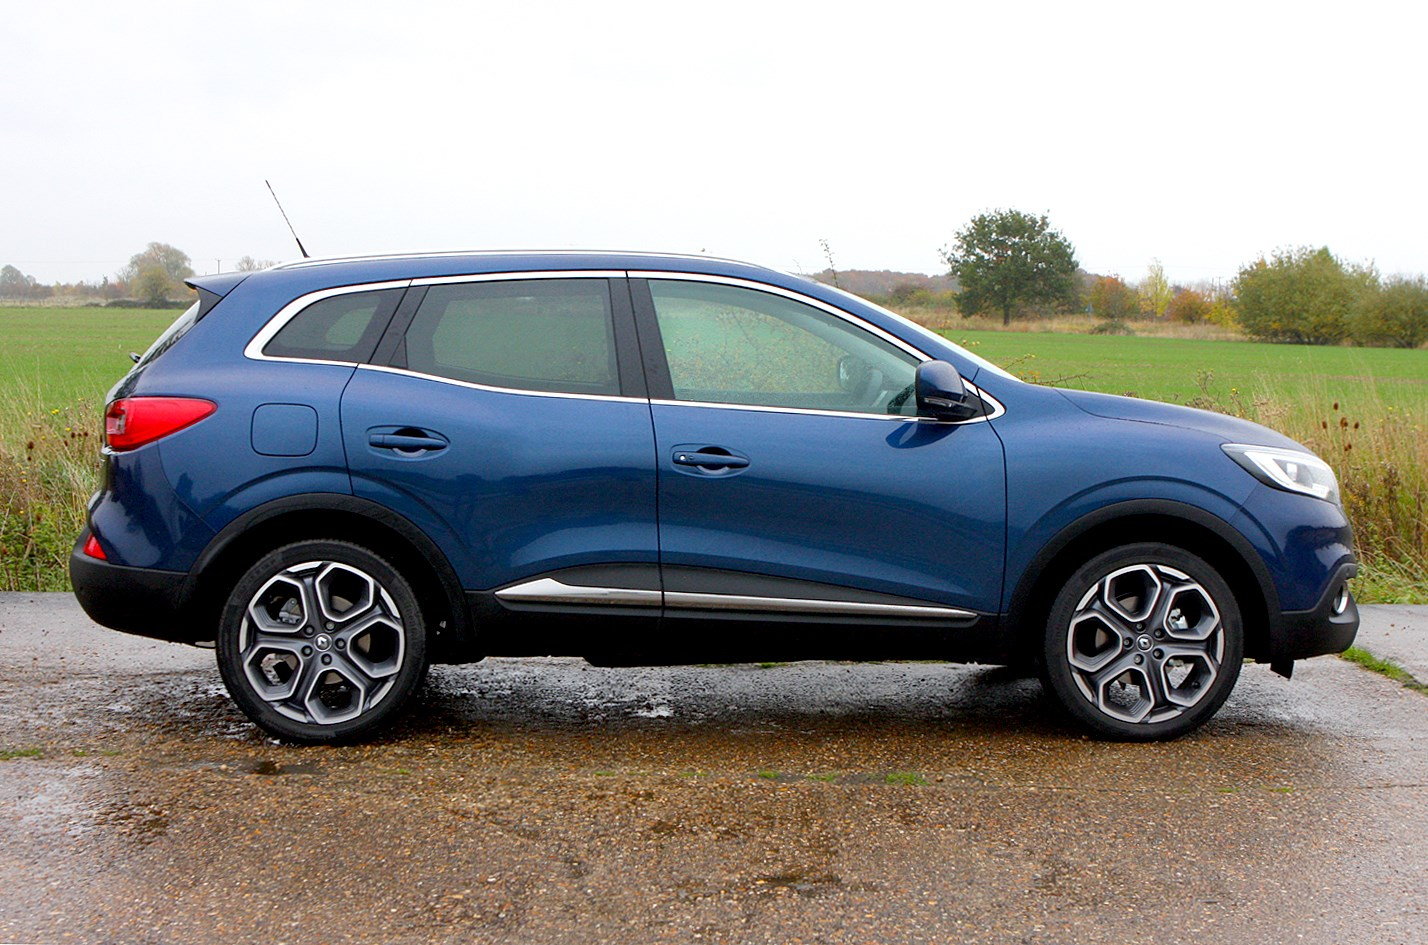 renault kadjar suv review summary parkers. Black Bedroom Furniture Sets. Home Design Ideas